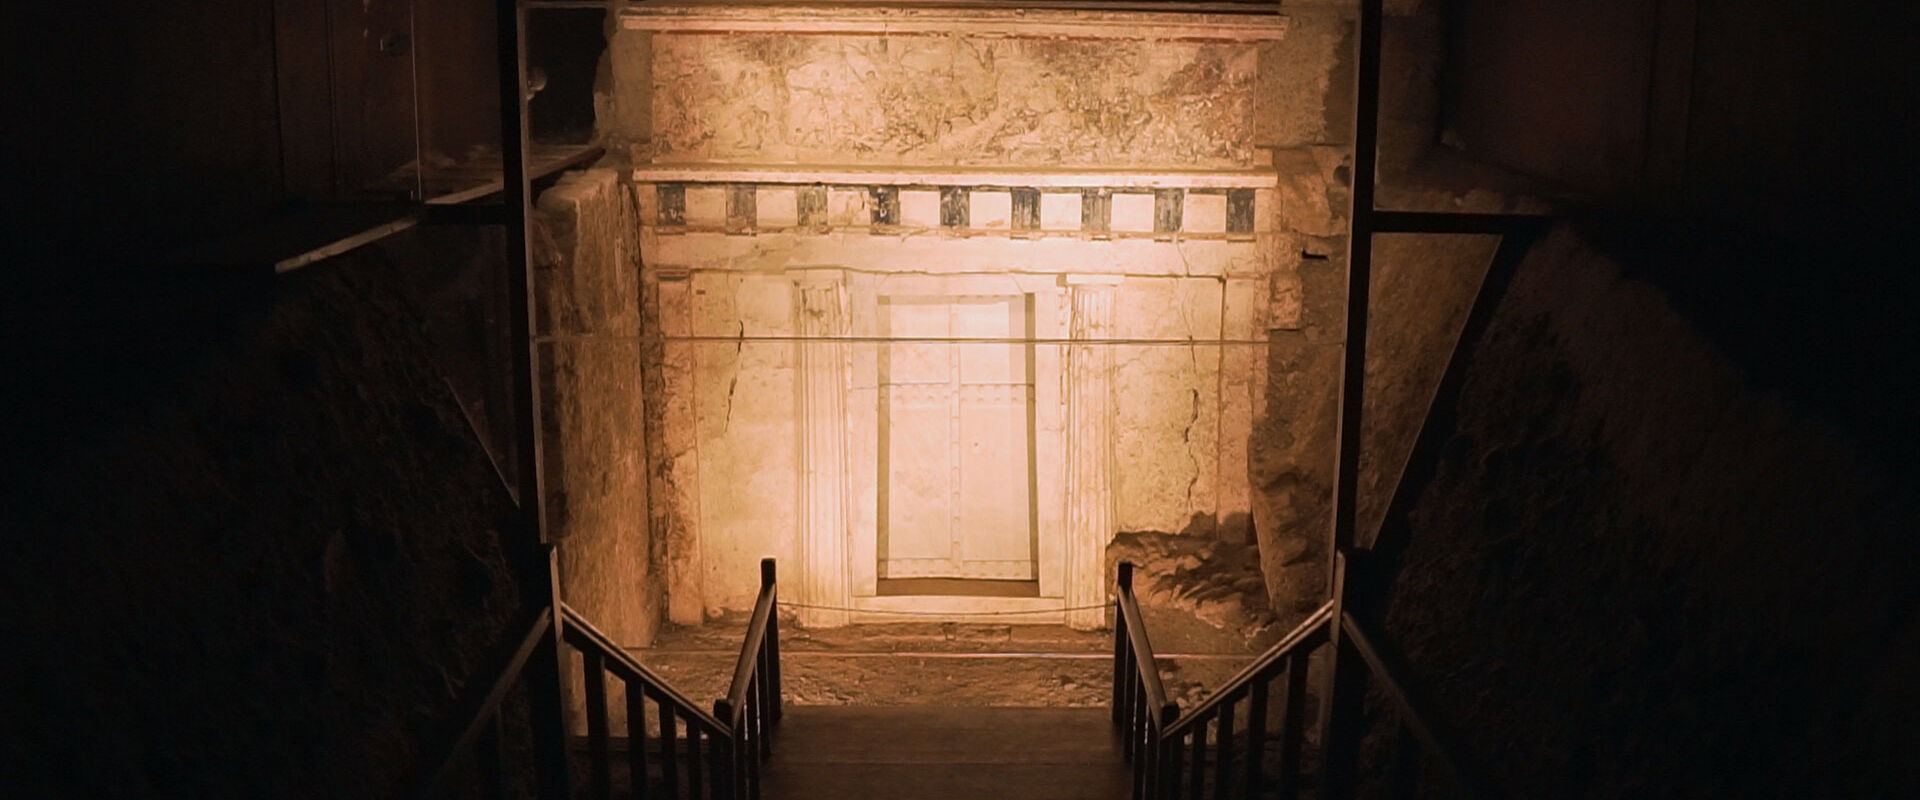 The tomb of Philip II in Vergina